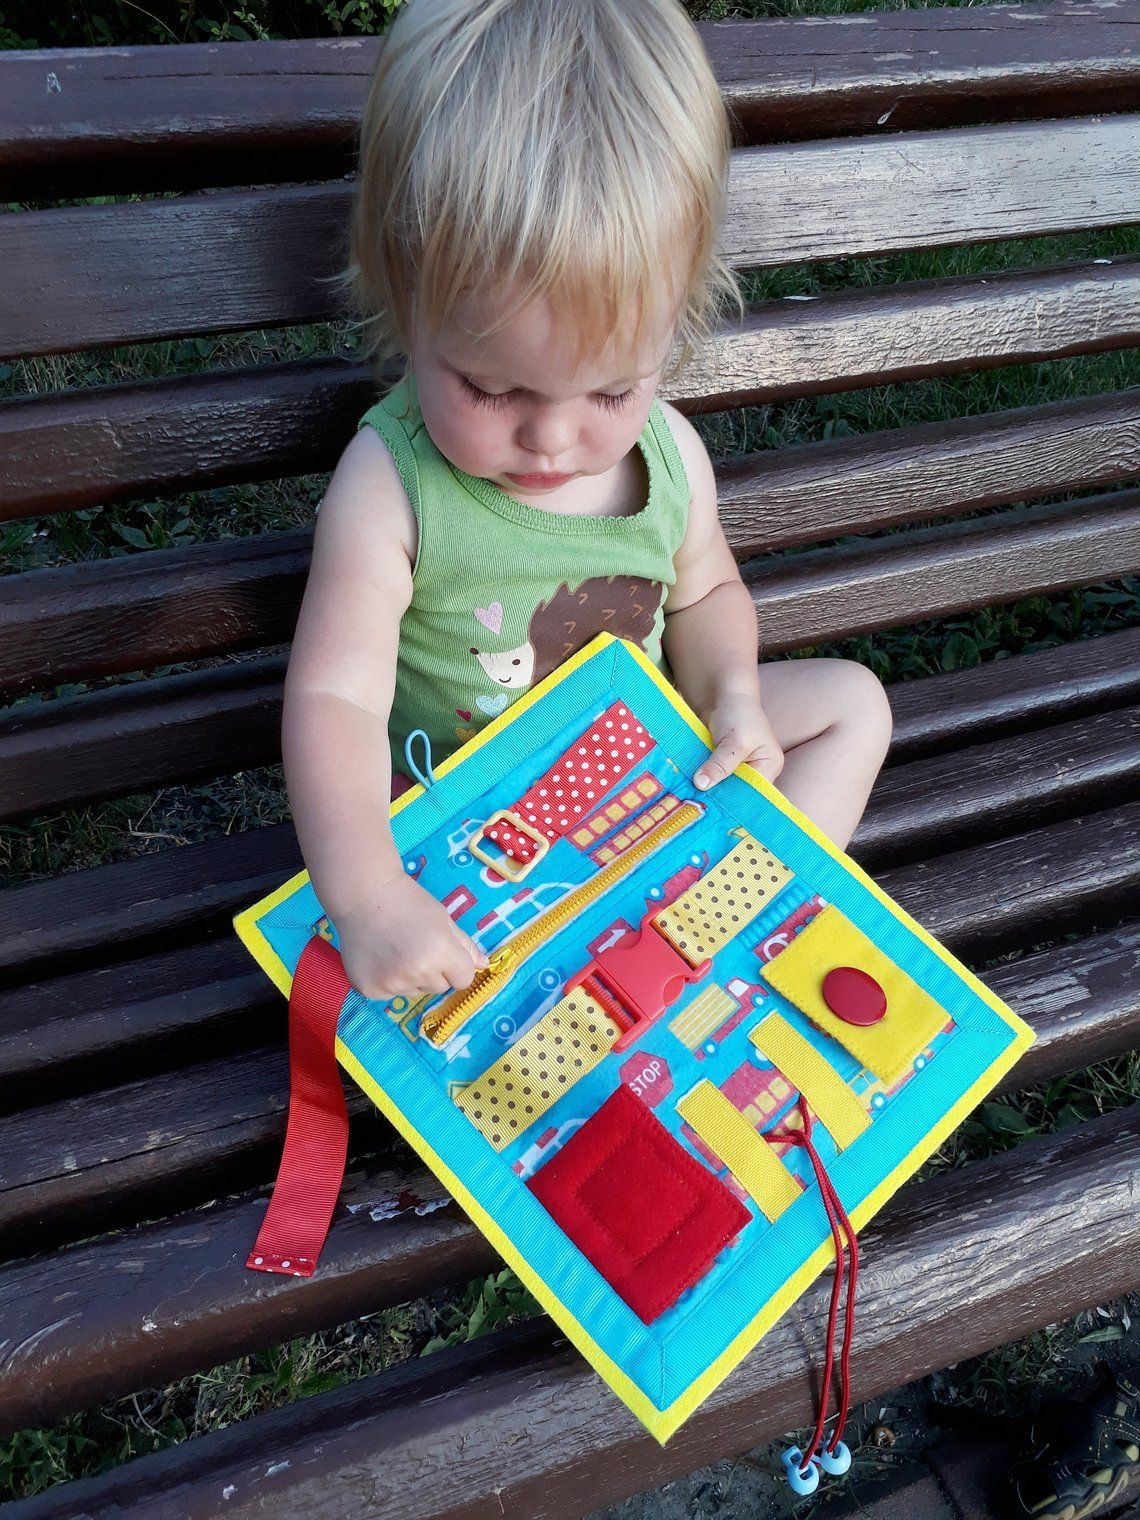 Tutorial Quiet Book For 2 Year Old Soft Baby Travel Toy Hey My Frist Softbook Image 0